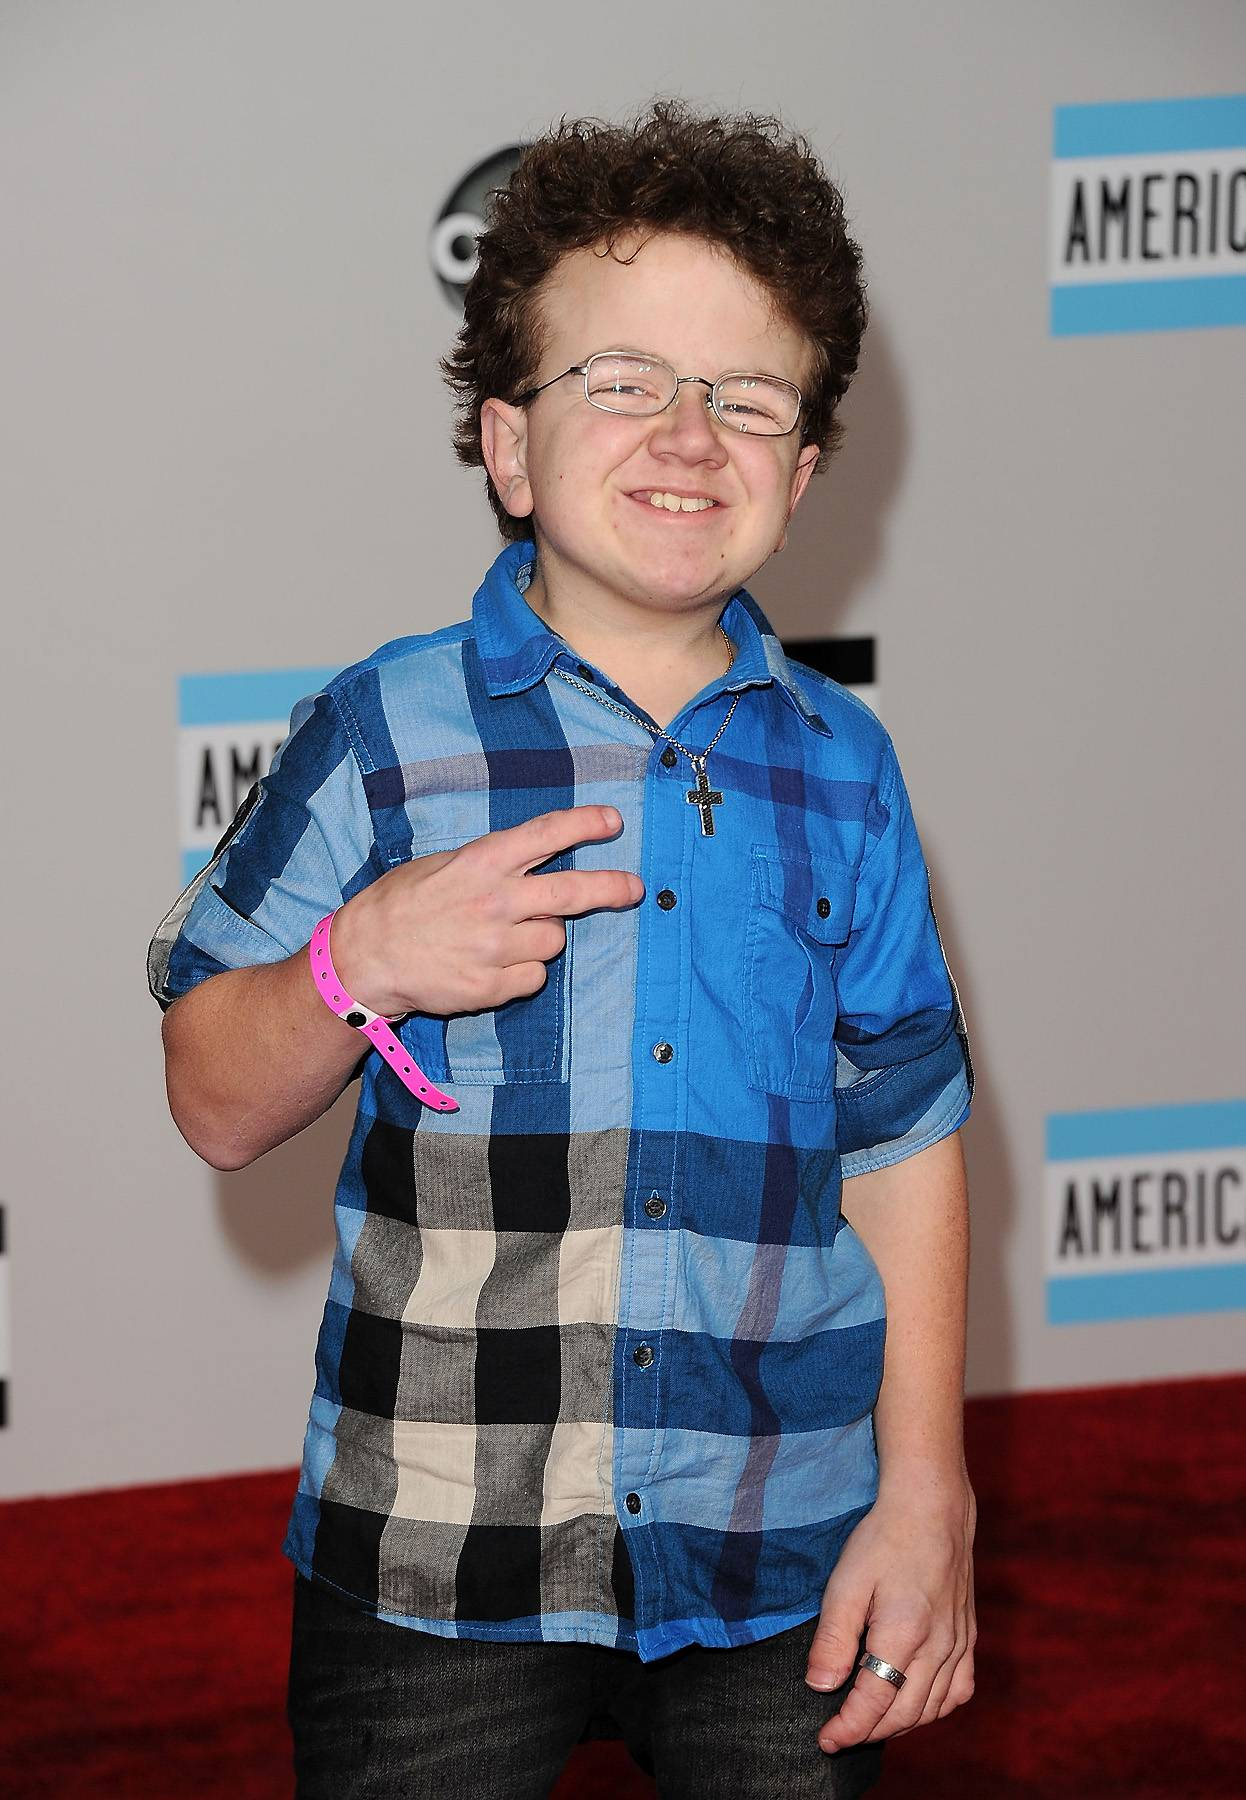 011912-shows-lets-stay-together-you-tube-keenan-cahill.jpg